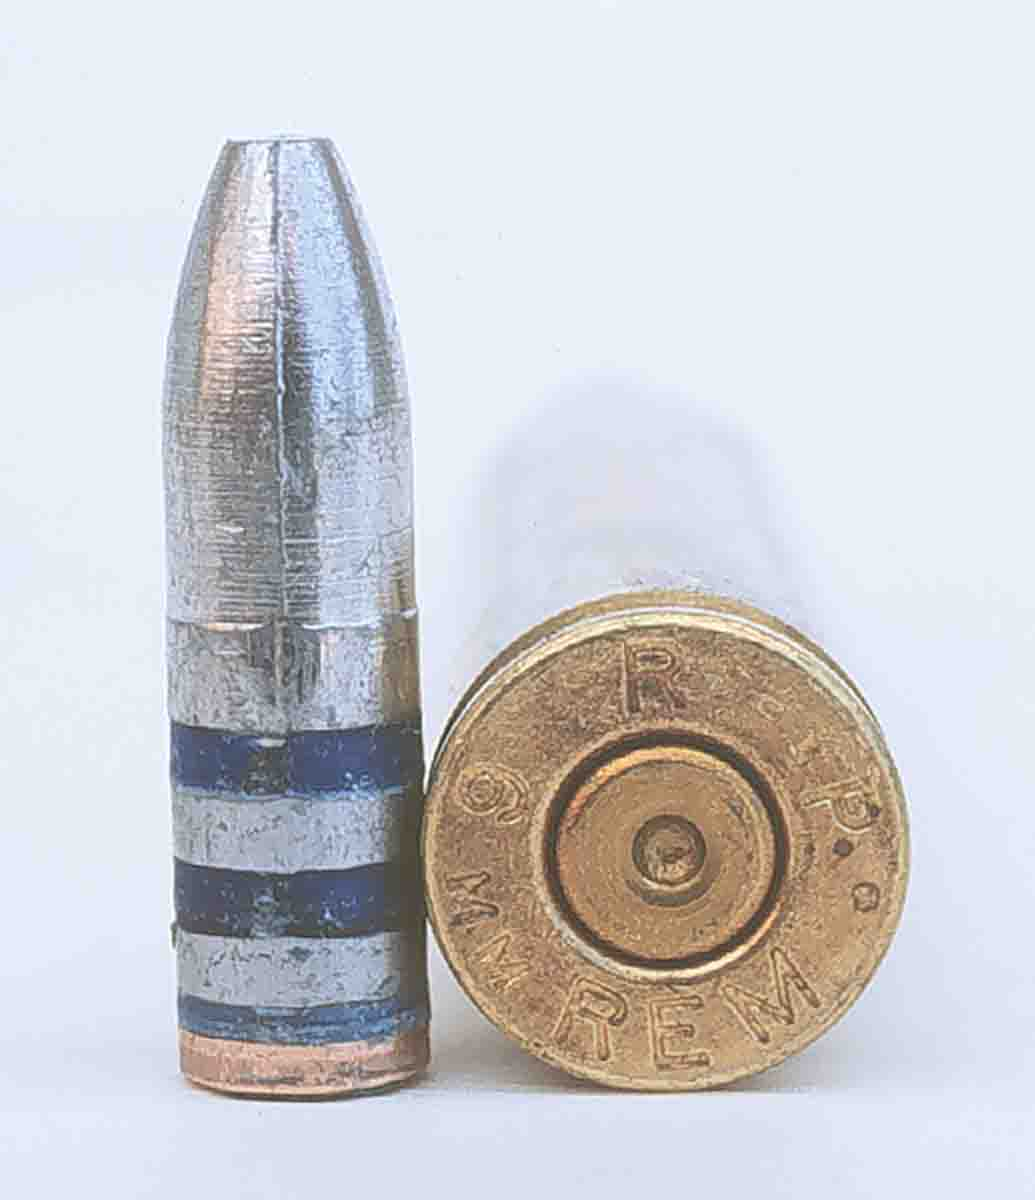 The RCBS 95-grain bullet shot very well from the 6mm Remington. Half the loads grouped under one inch.